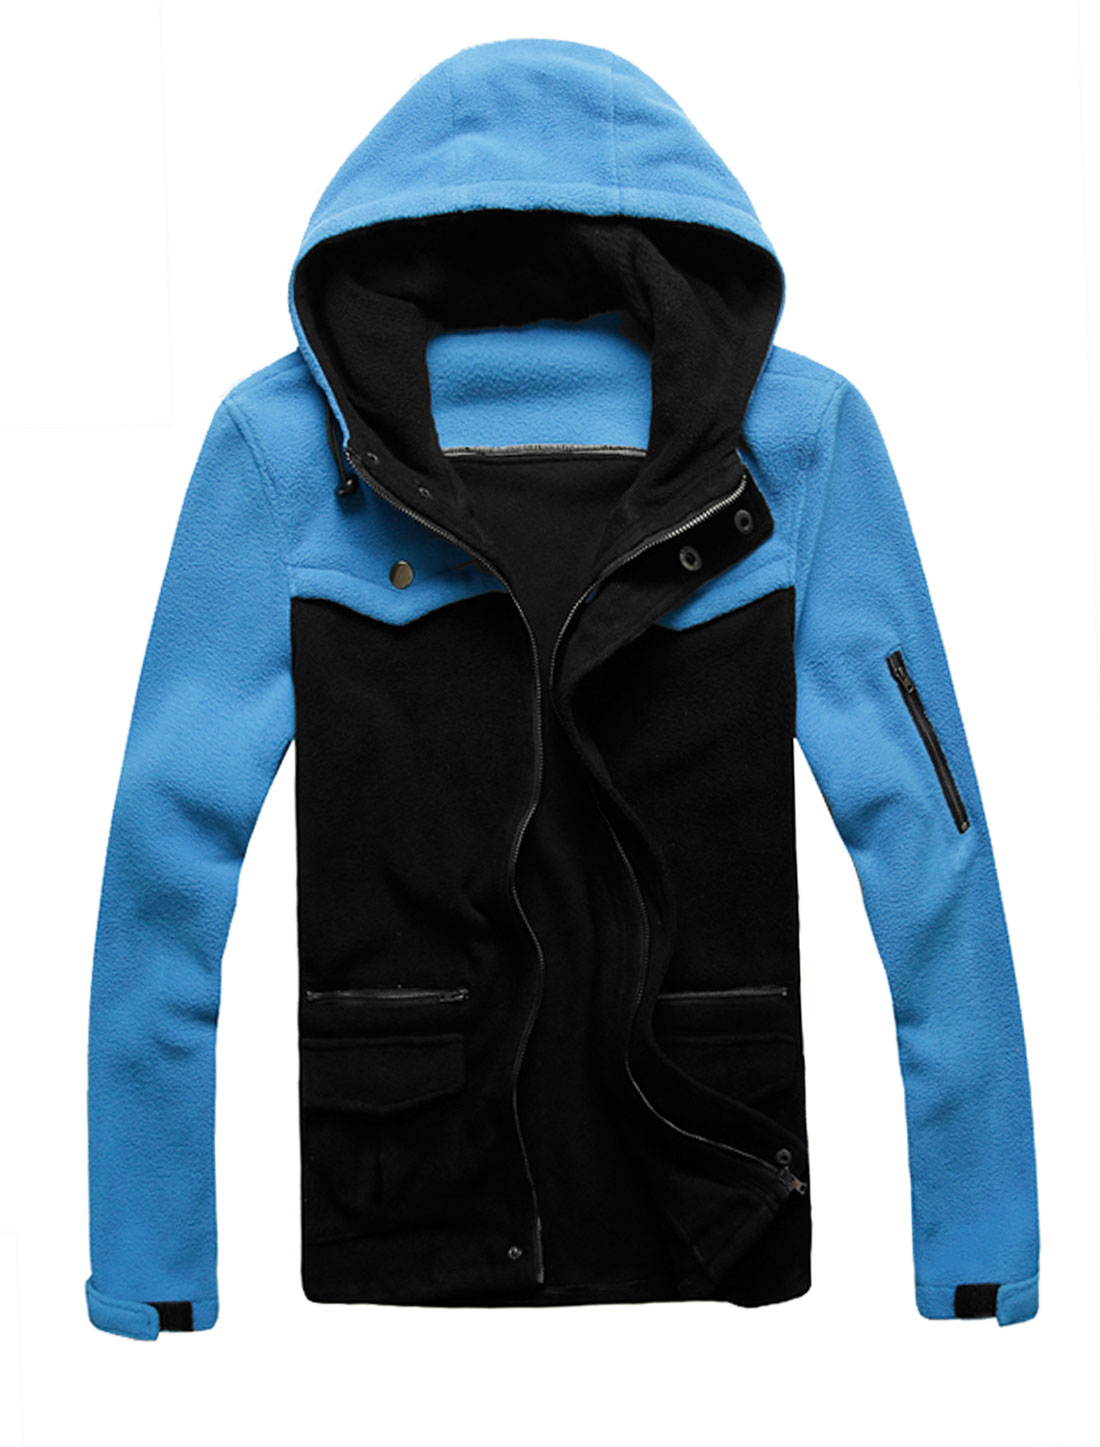 Men Zip-Up Pockets Decor Contrast Color Casual Fleece Jacket Blue Black M